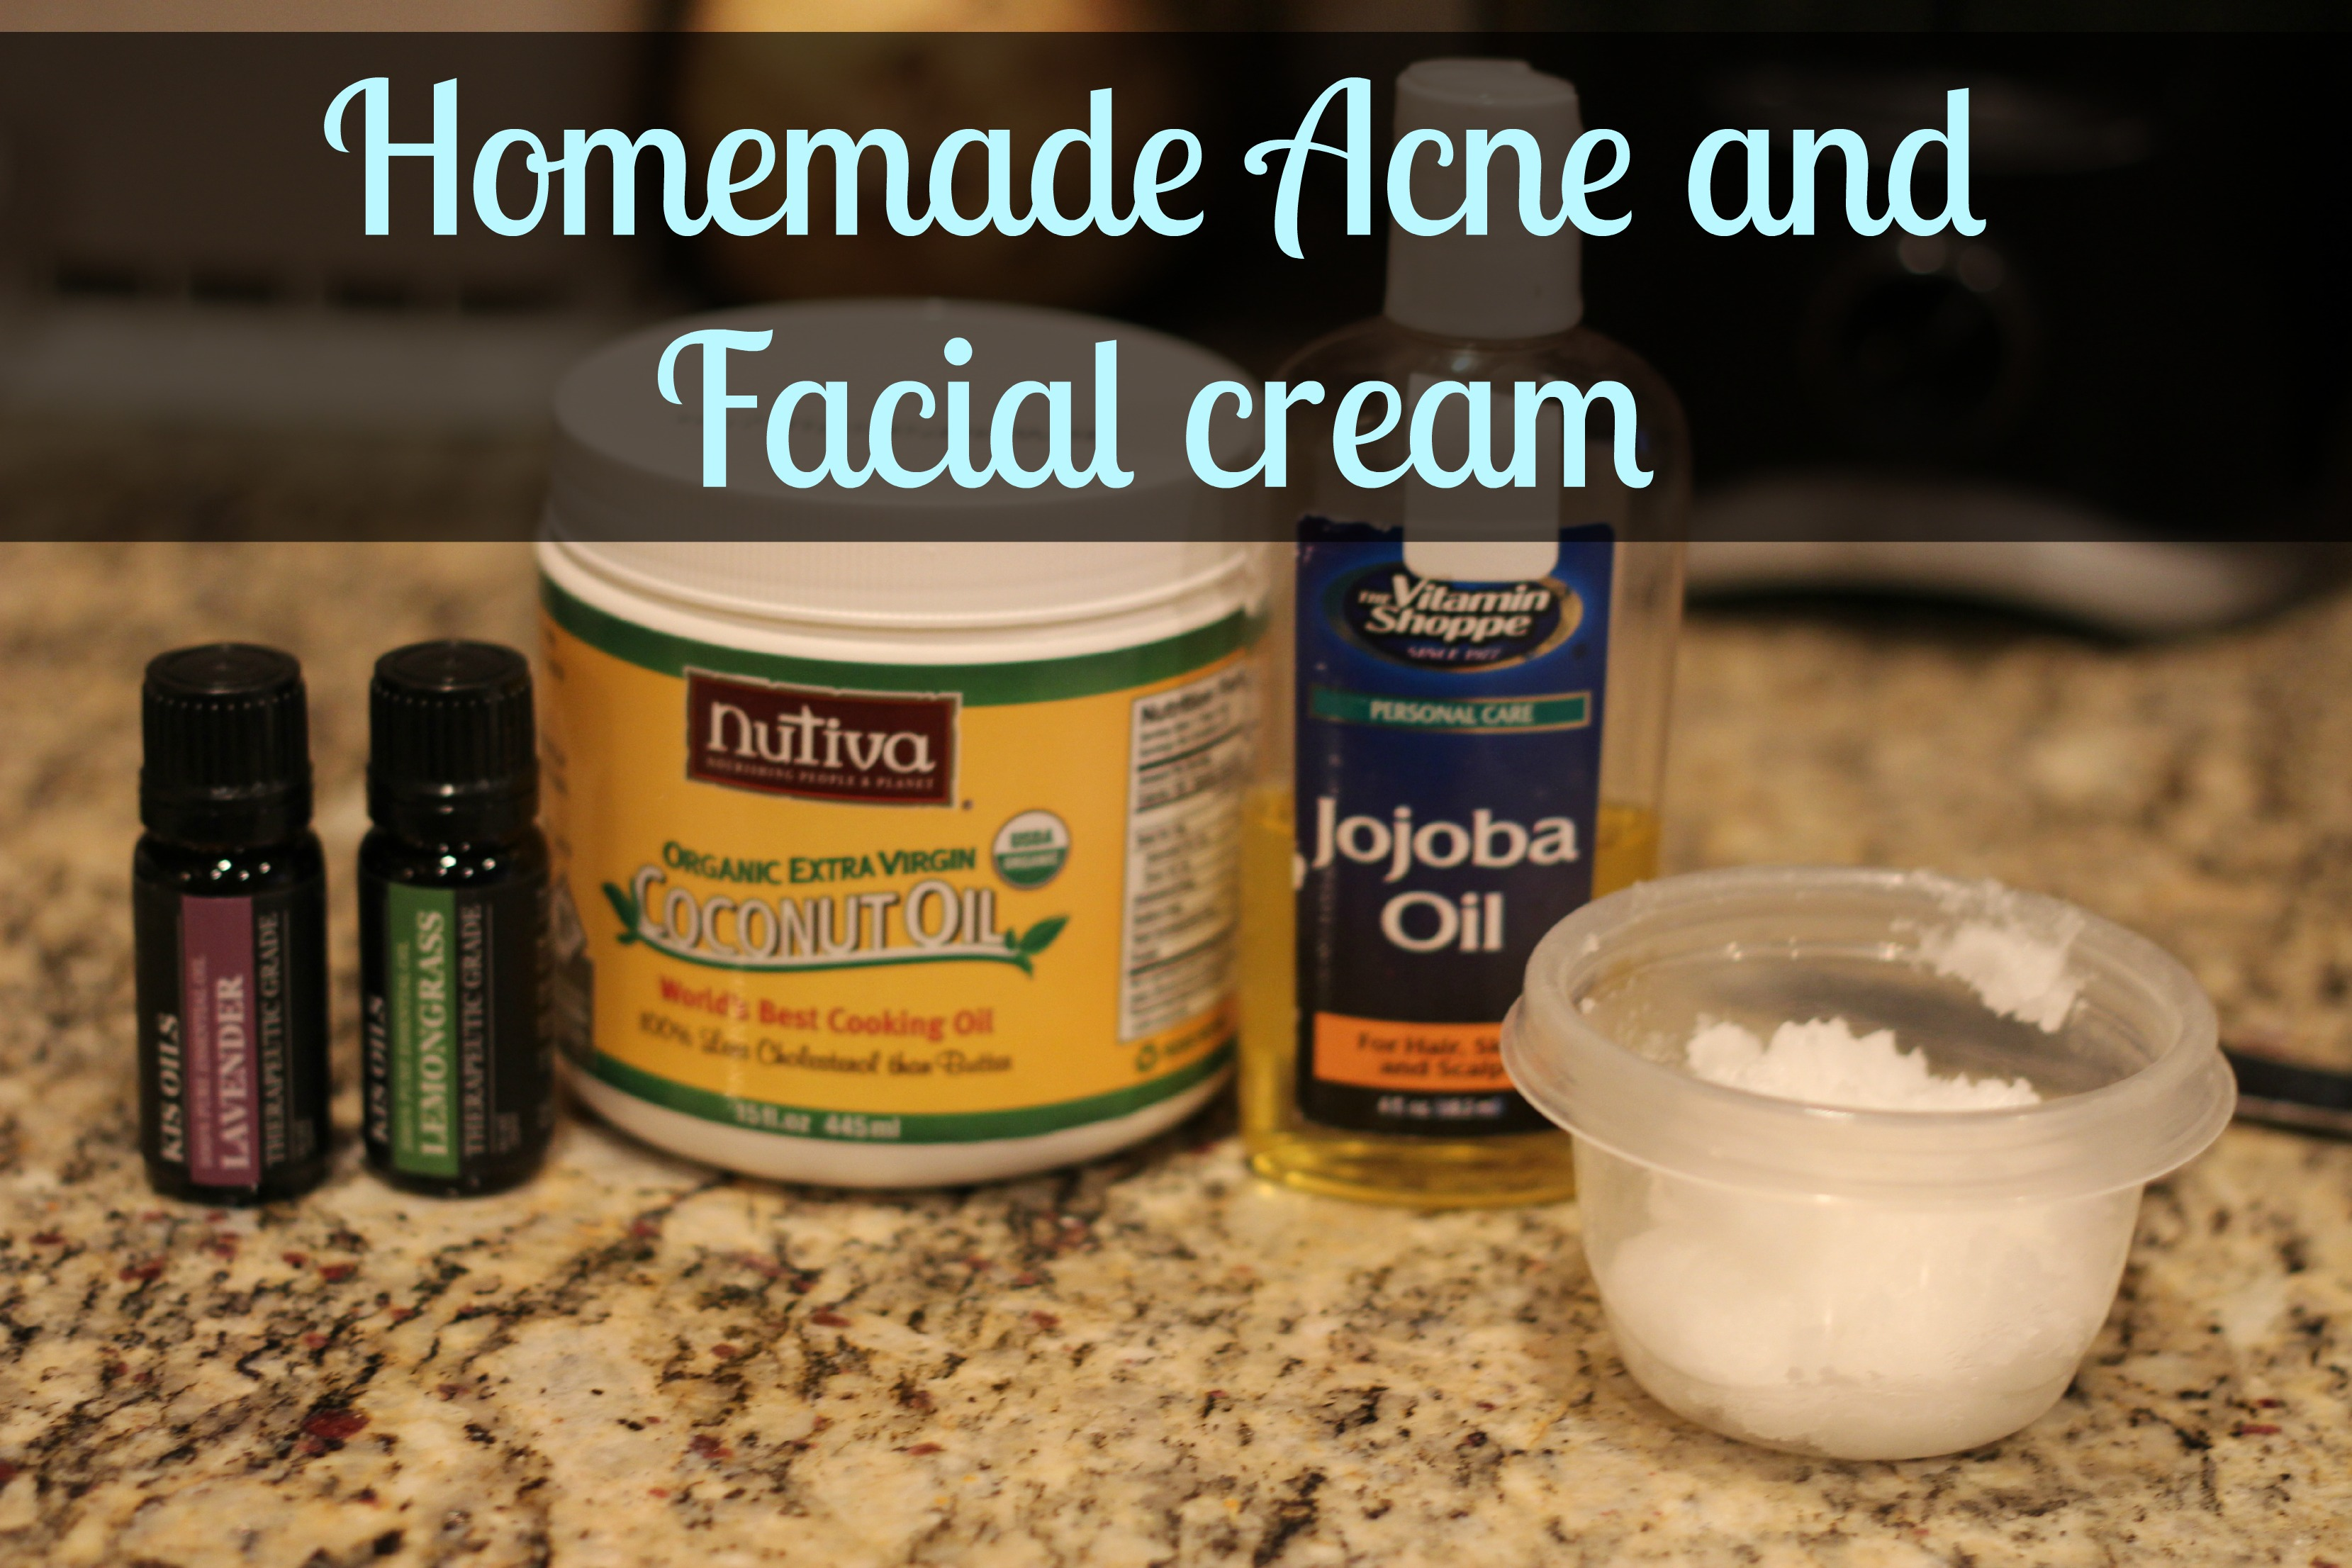 How To Control Oil In Face Naturally